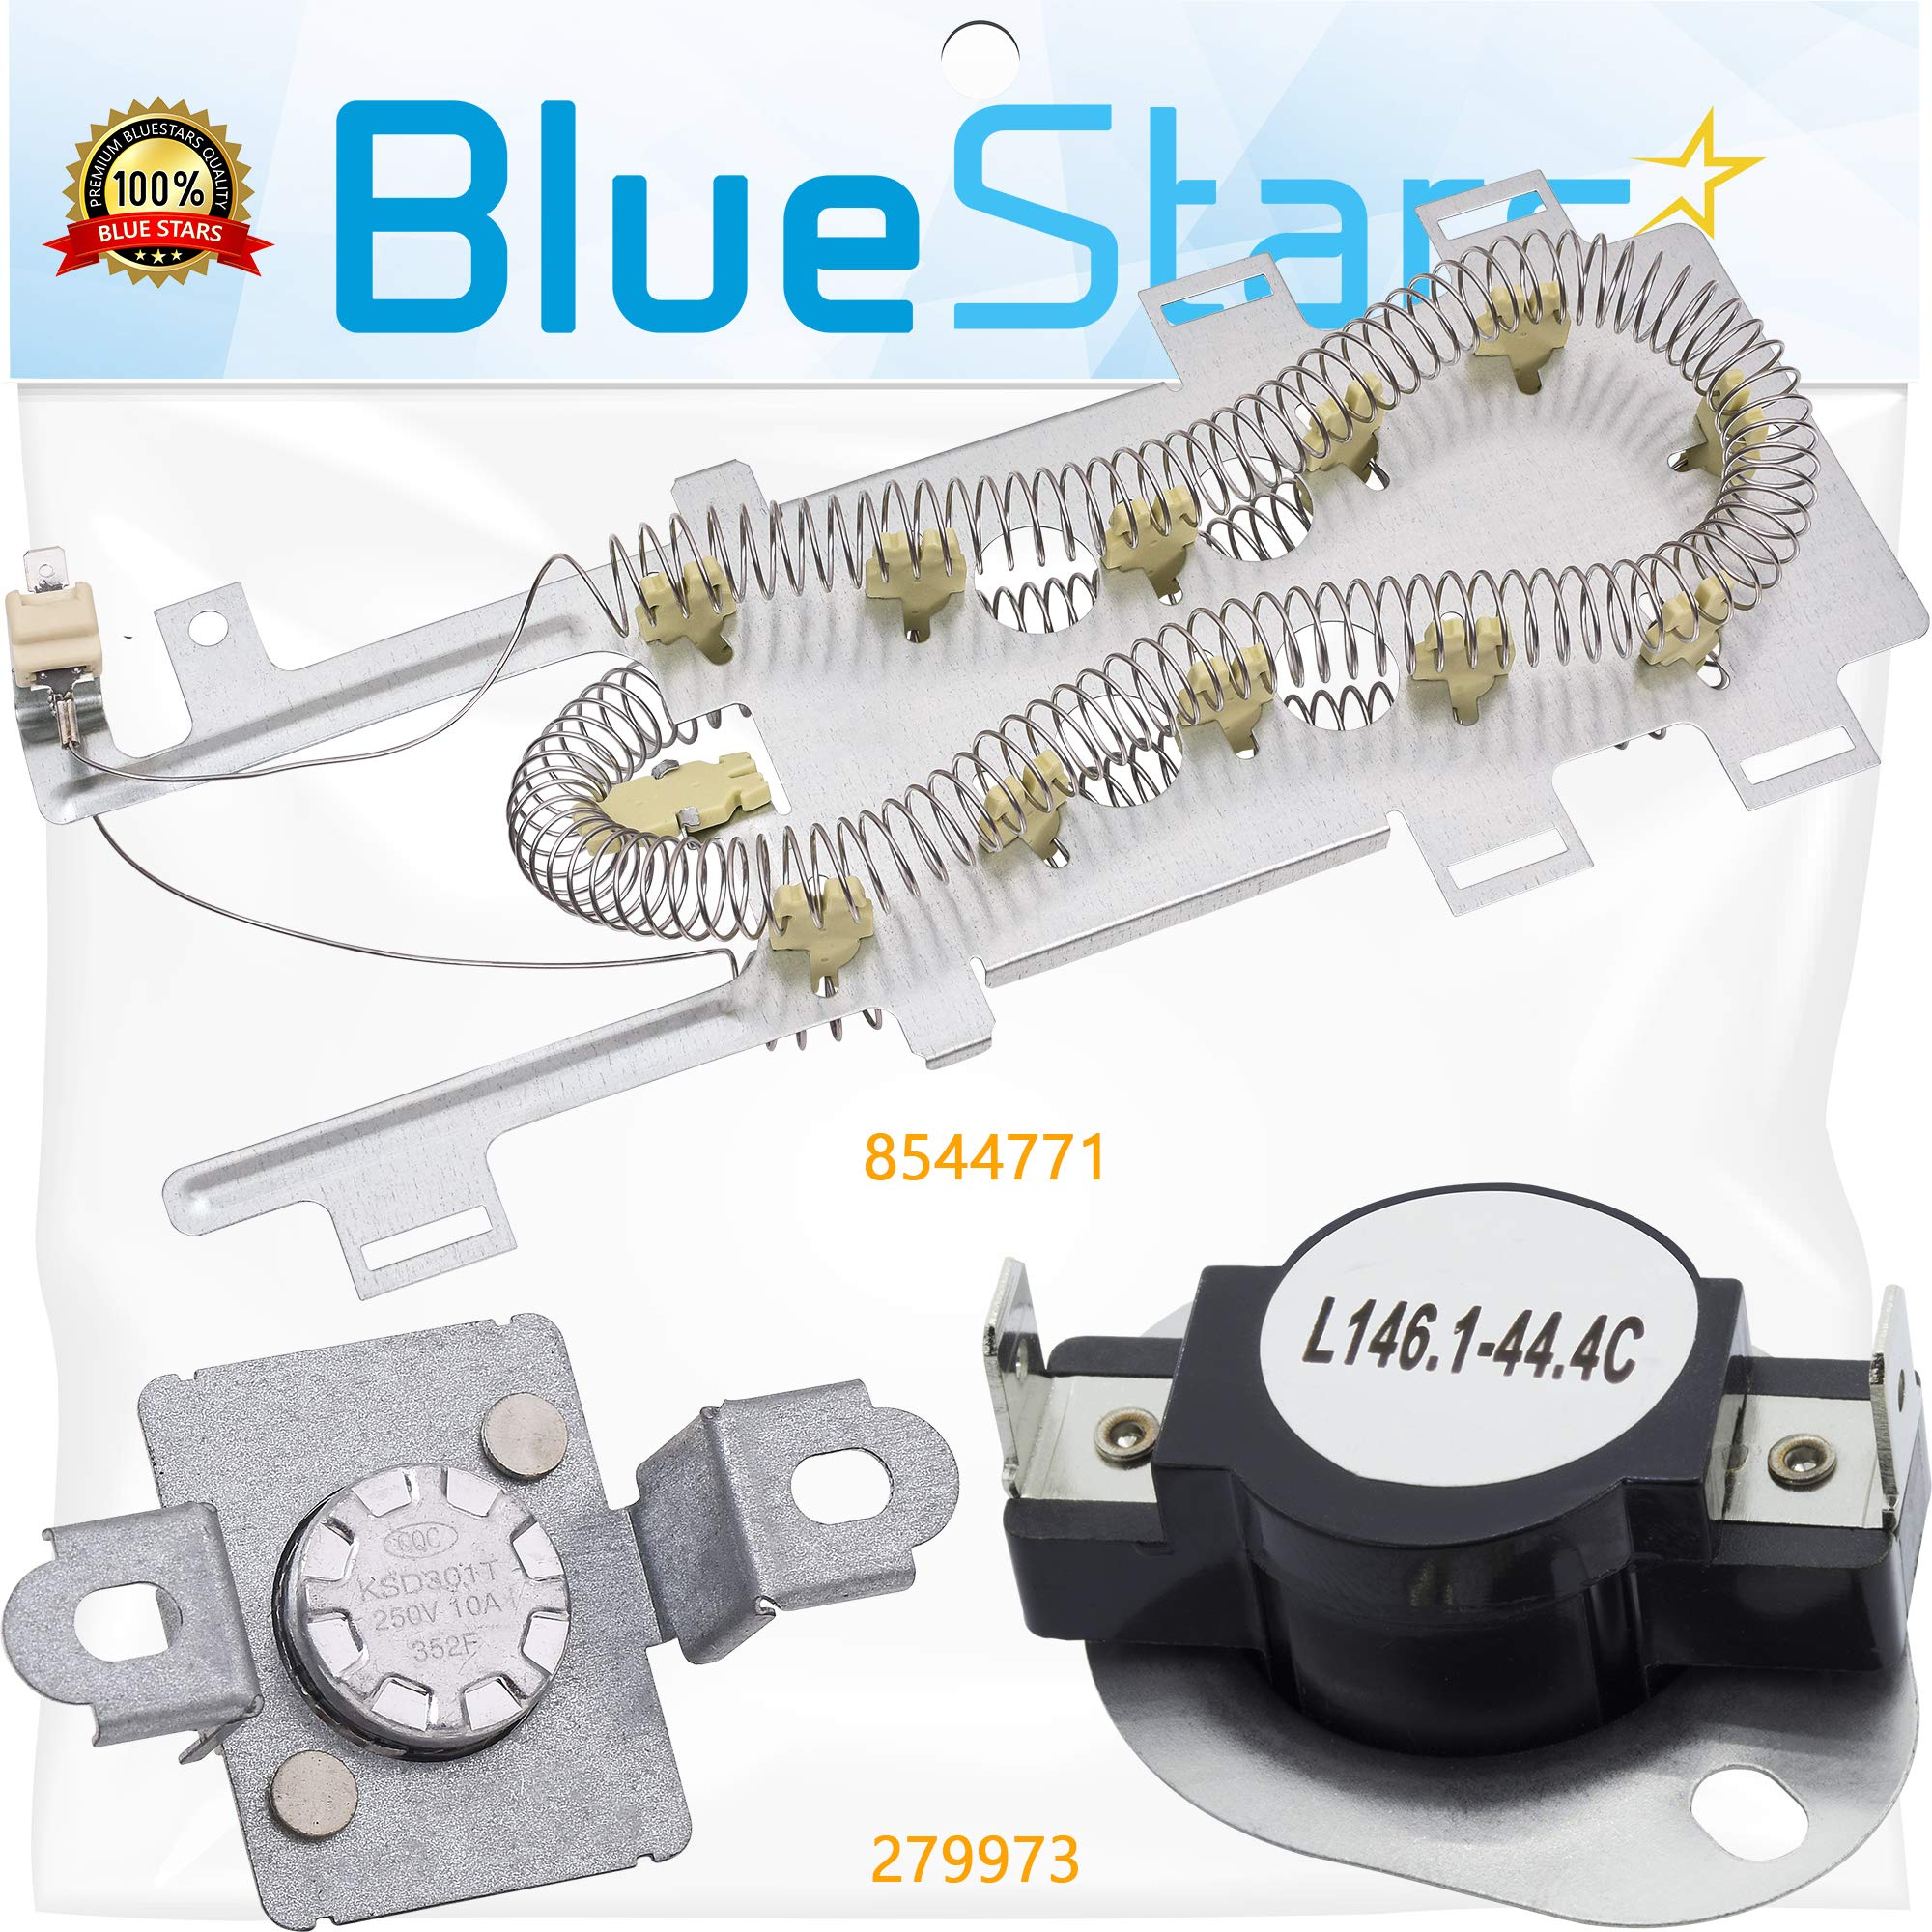 8544771 & 279973 Dryer Heating Element With Dryer Thermal Cut-off Fuse Kit by Blue Stars- Exact Fit for Whirlpool & Kenmore Dryers by BlueStars